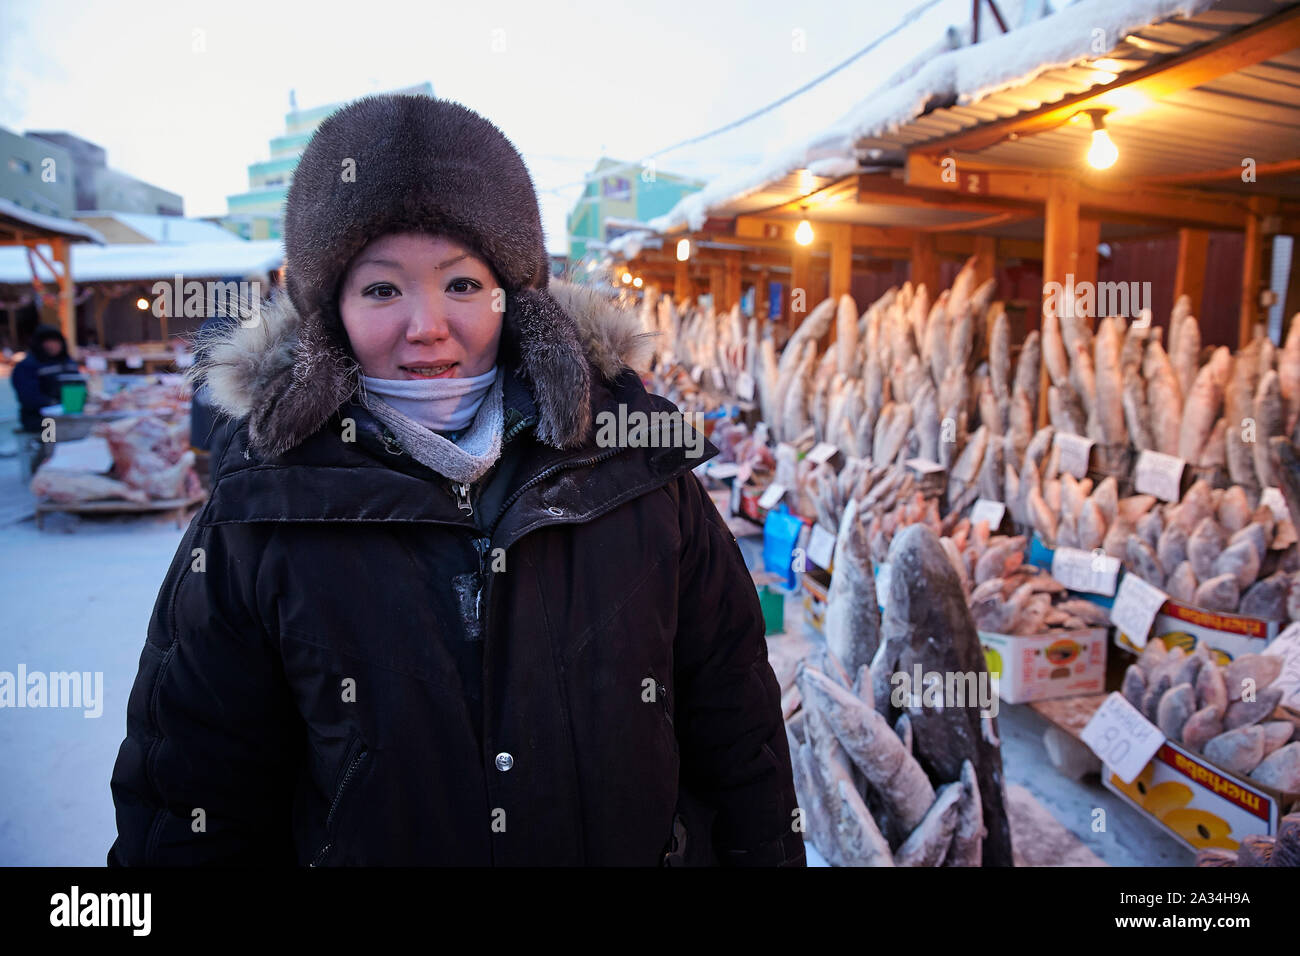 Russia Yakutsk Cold market minus 45 degrees celcius during the day, fish deep frost 5-02-2013 photo: Jaco Klamer Stock Photo